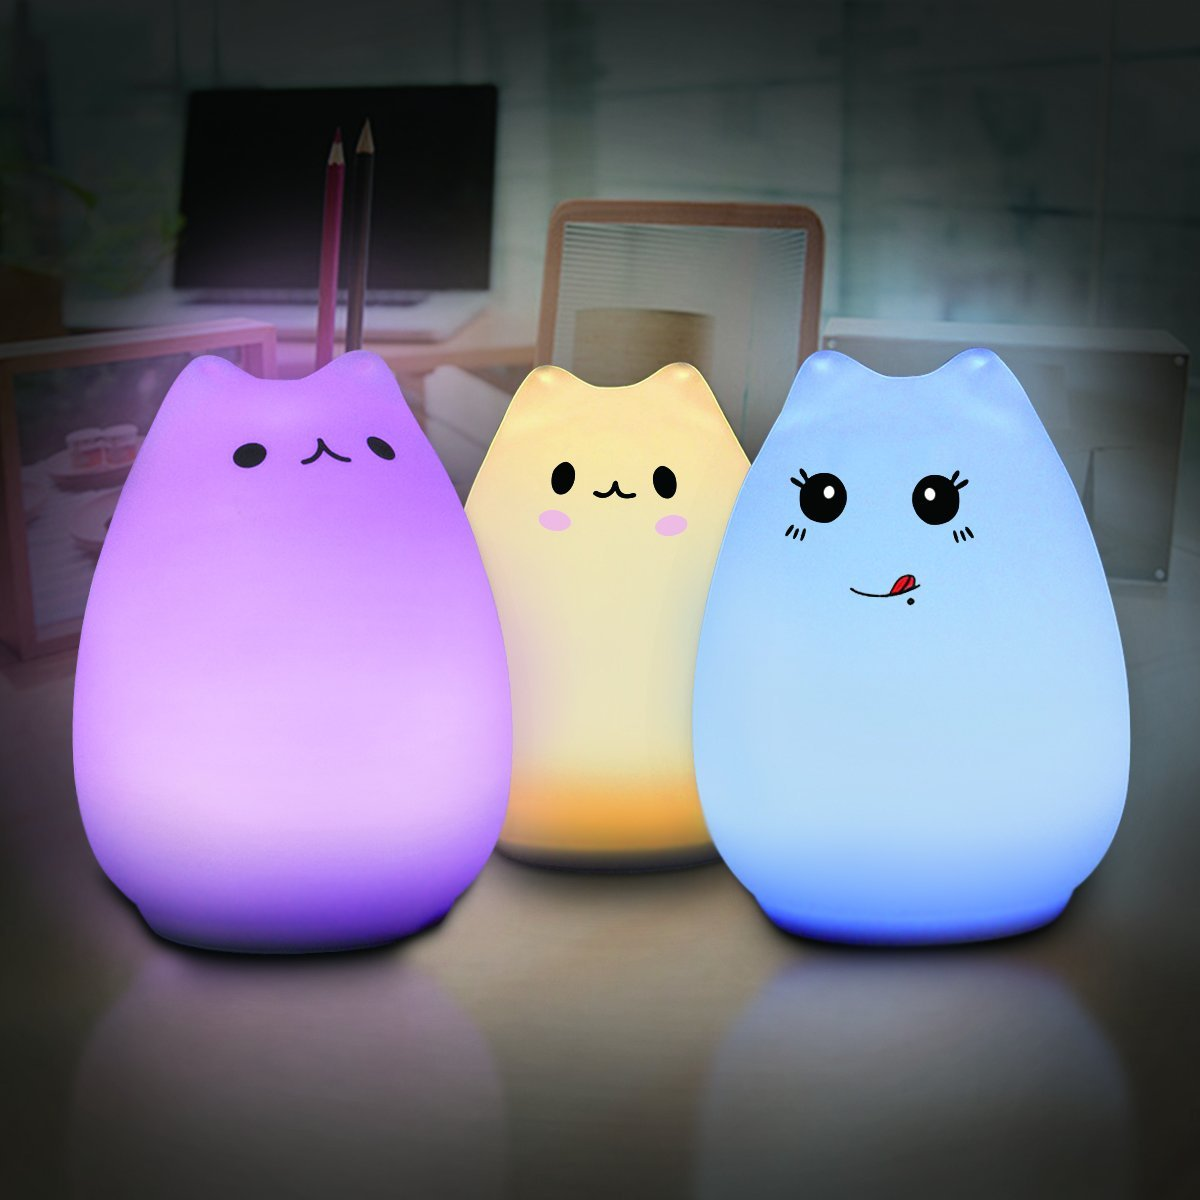 Elfeland Multi-color Cat Lamp with Remote- Children Cute Kitty Cartoon Animal LED Portable Silicone Night Light - 12 Single Colors & 7-Color Breathing Modes - USB Rechargeable- Timing Function